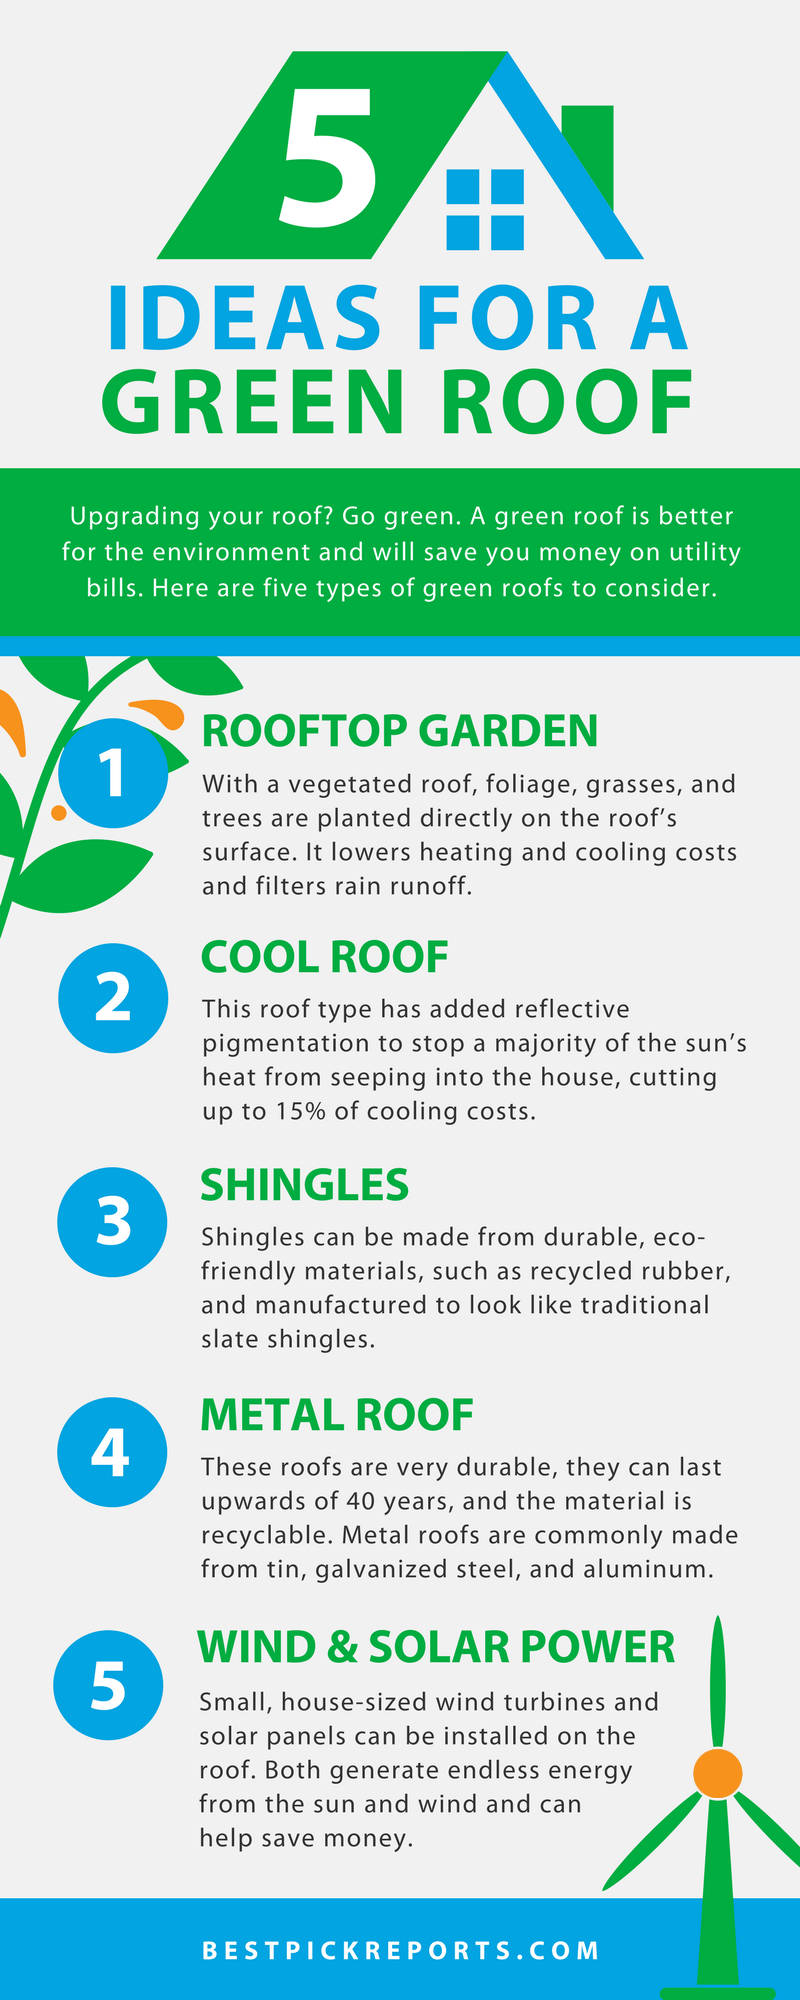 5 ideas for a green roof infographic